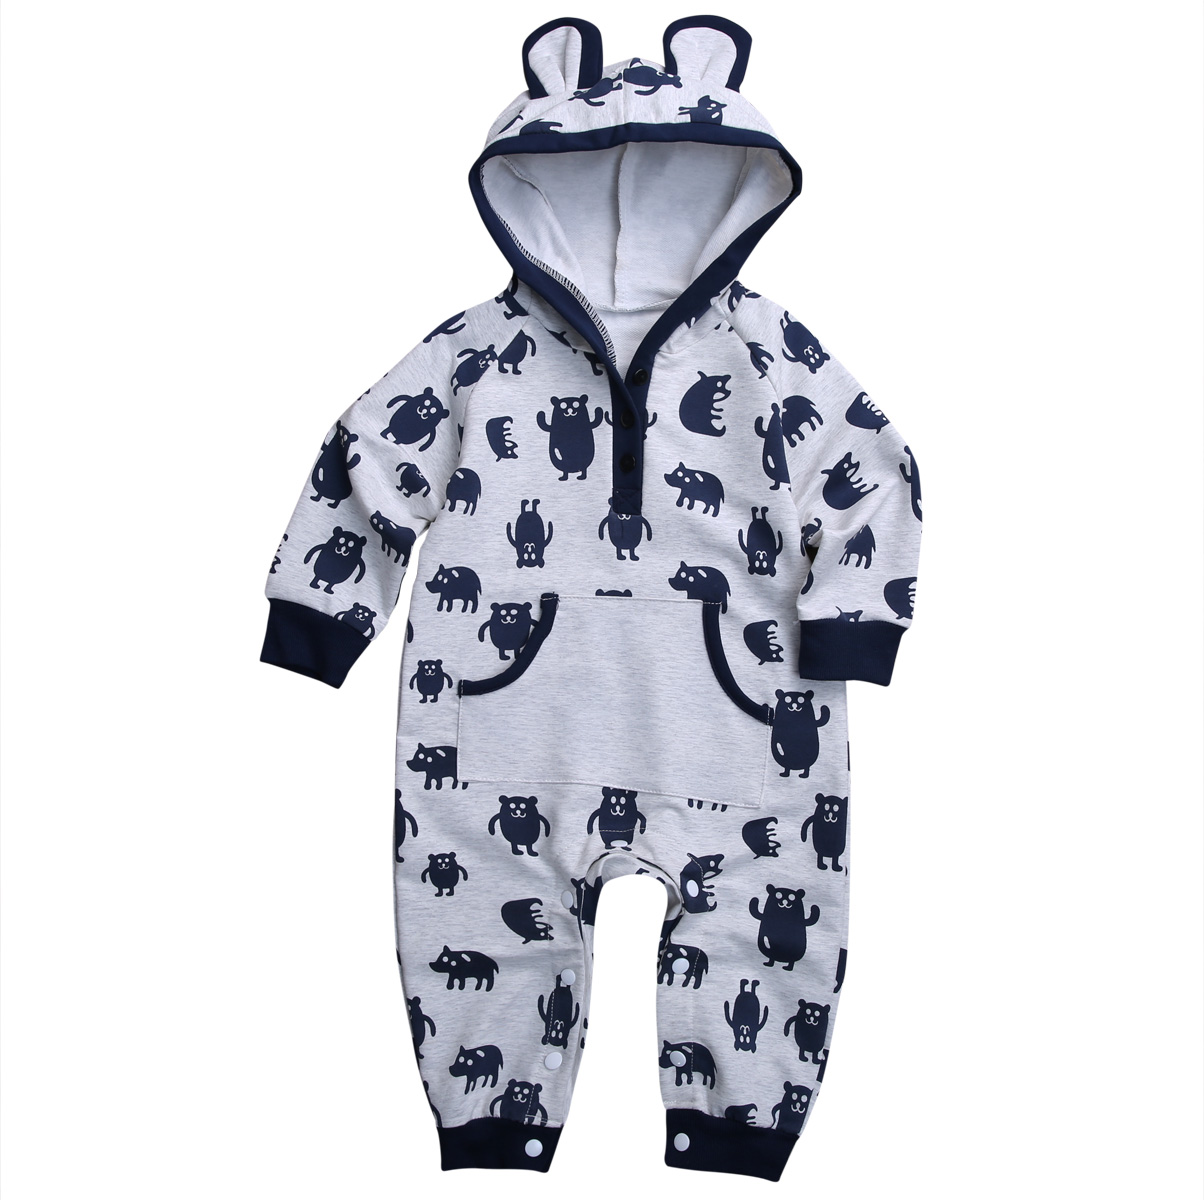 Newborn Infant Baby Boy Girl Kids Winter Clothes Cotton Warm Bear Long Romper Jumpsuit Outfit newborn infant baby romper cute rabbit new born jumpsuit clothing girl boy baby bear clothes toddler romper costumes